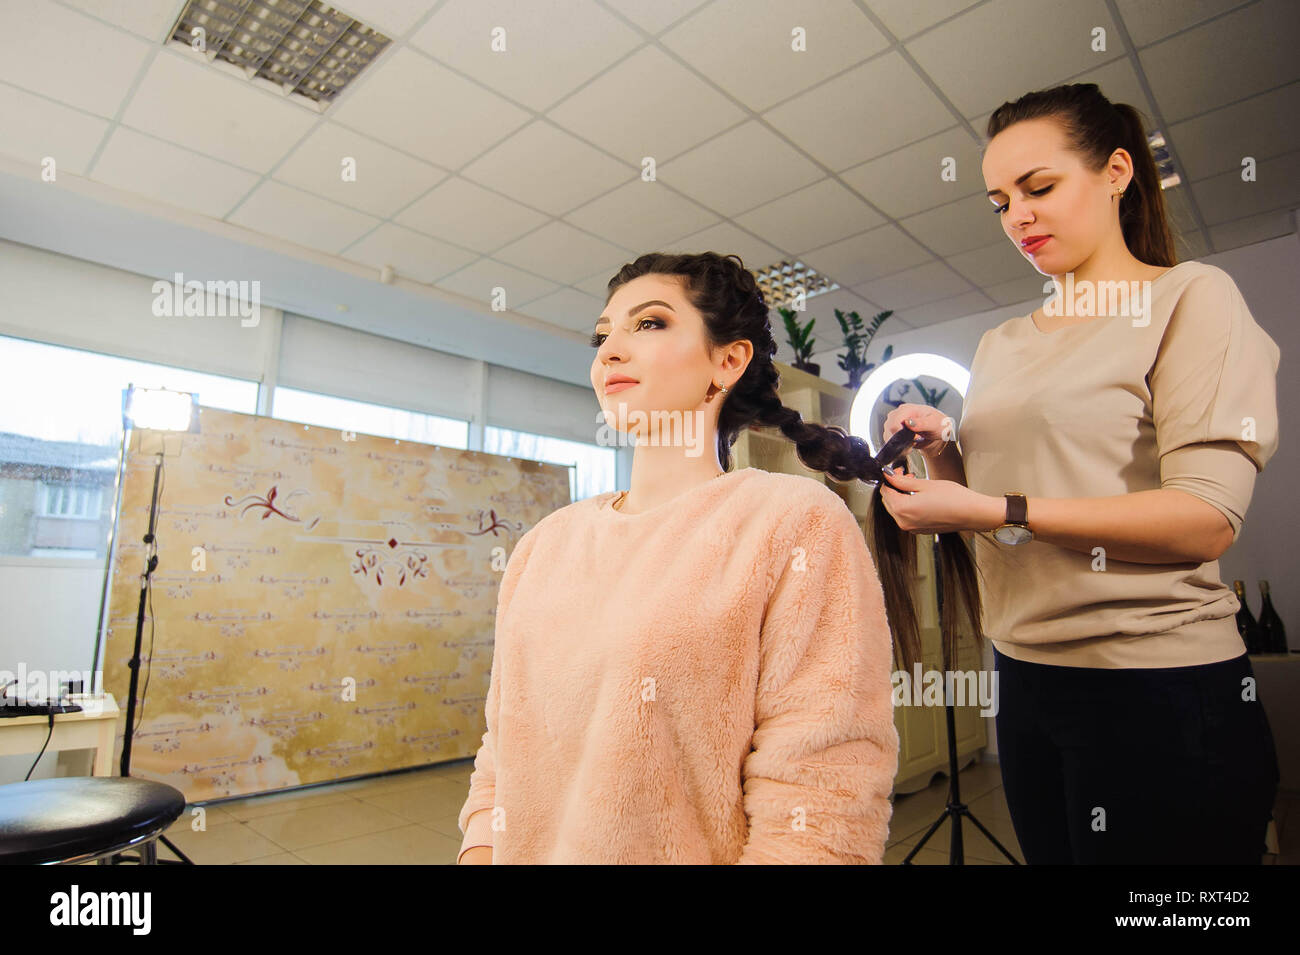 Women S Haircut Hairdresser Beauty Salon Beautiful Woman Getting Haircut By Hairdresser In The Beauty Salon Stock Photo Alamy